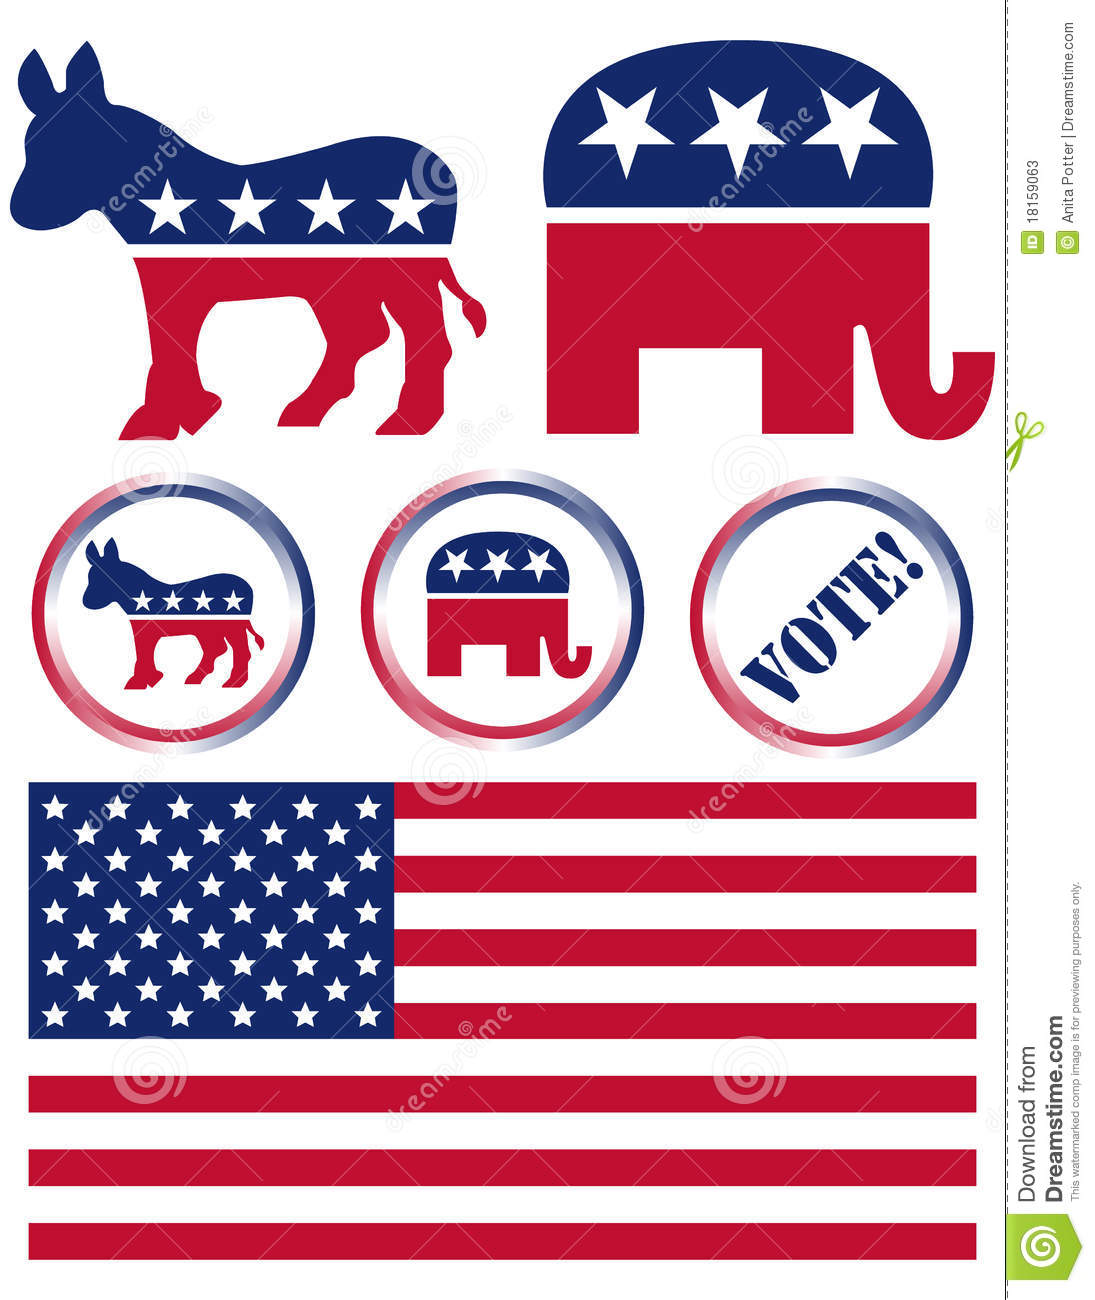 Set Of United States Political Party Symbols Editorial Stock Photo ...